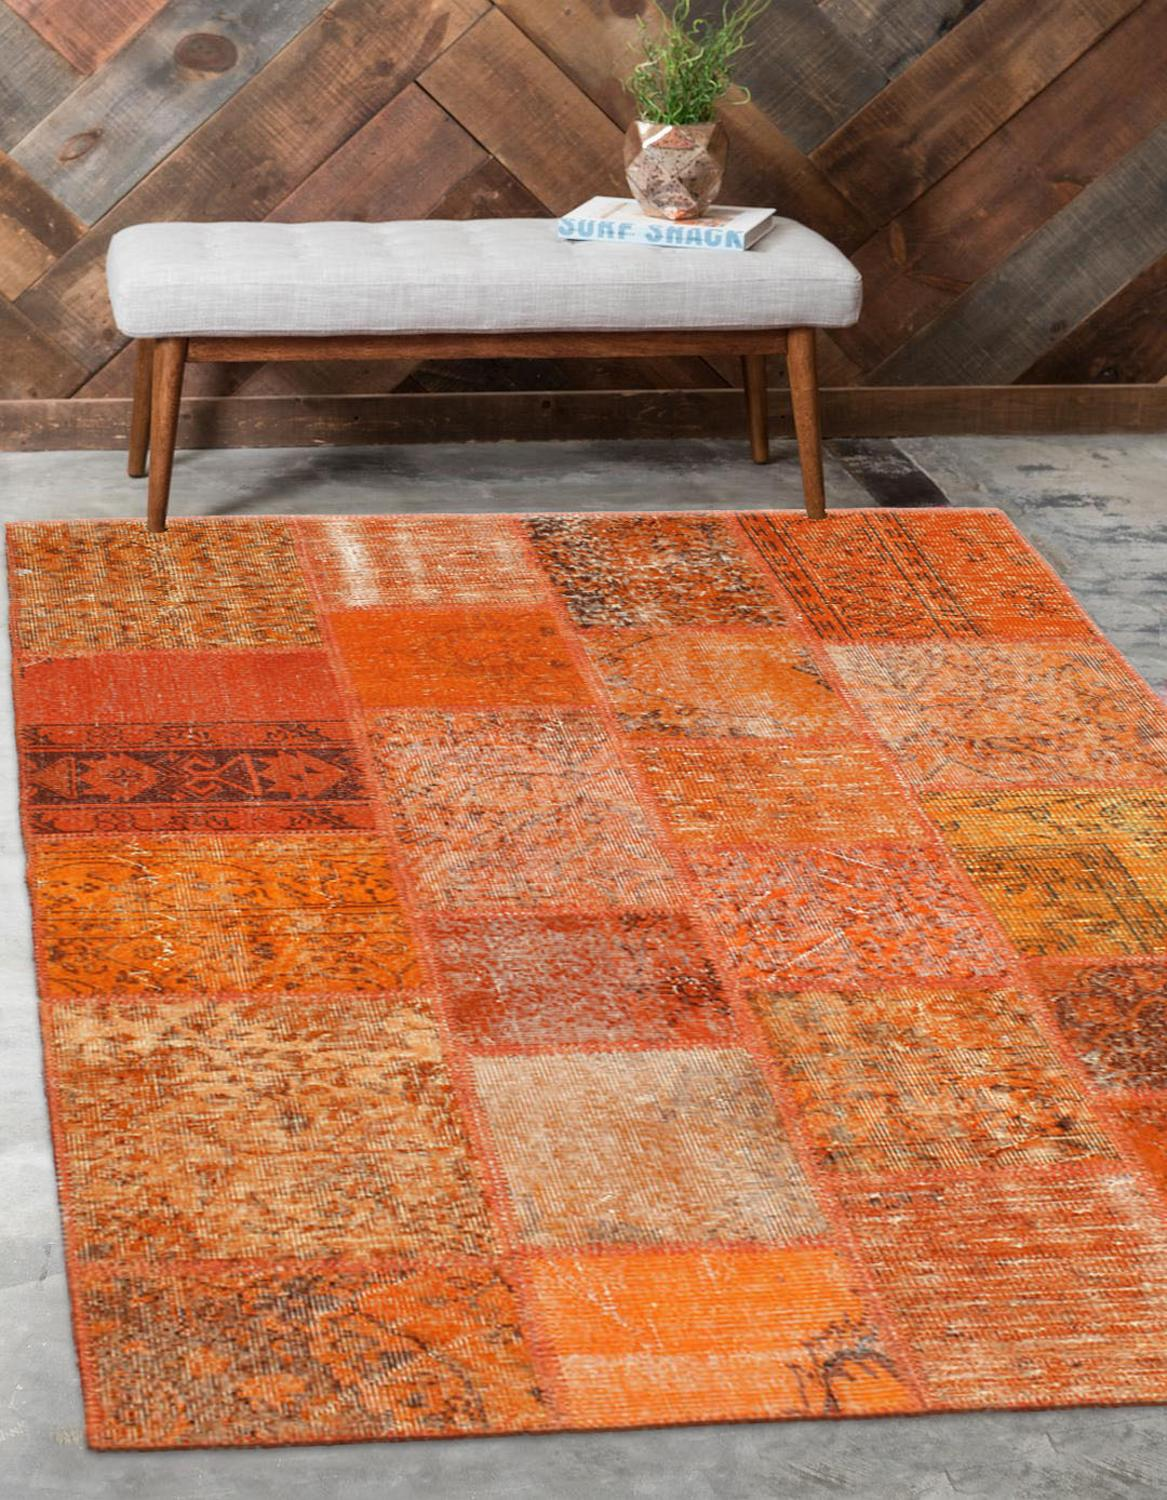 Else Orange Anatolian Patchwork Rug Turkish Handmade Organic Area Rug Decorative Home Decor Wool Patchwork Rug Carpet